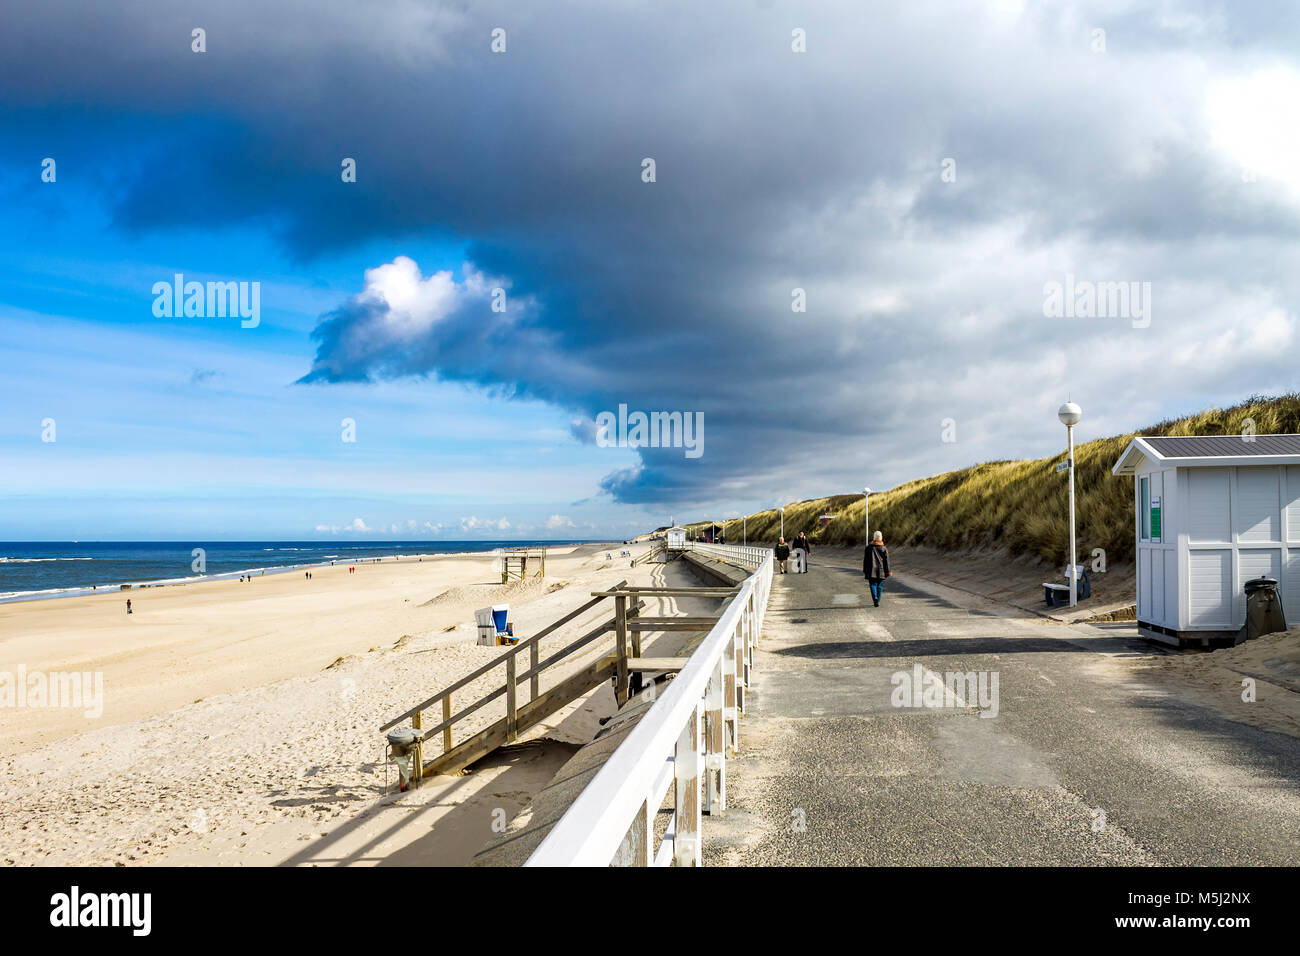 Germany, Schleswig-Holstein, Sylt, Kampen - Stock Image